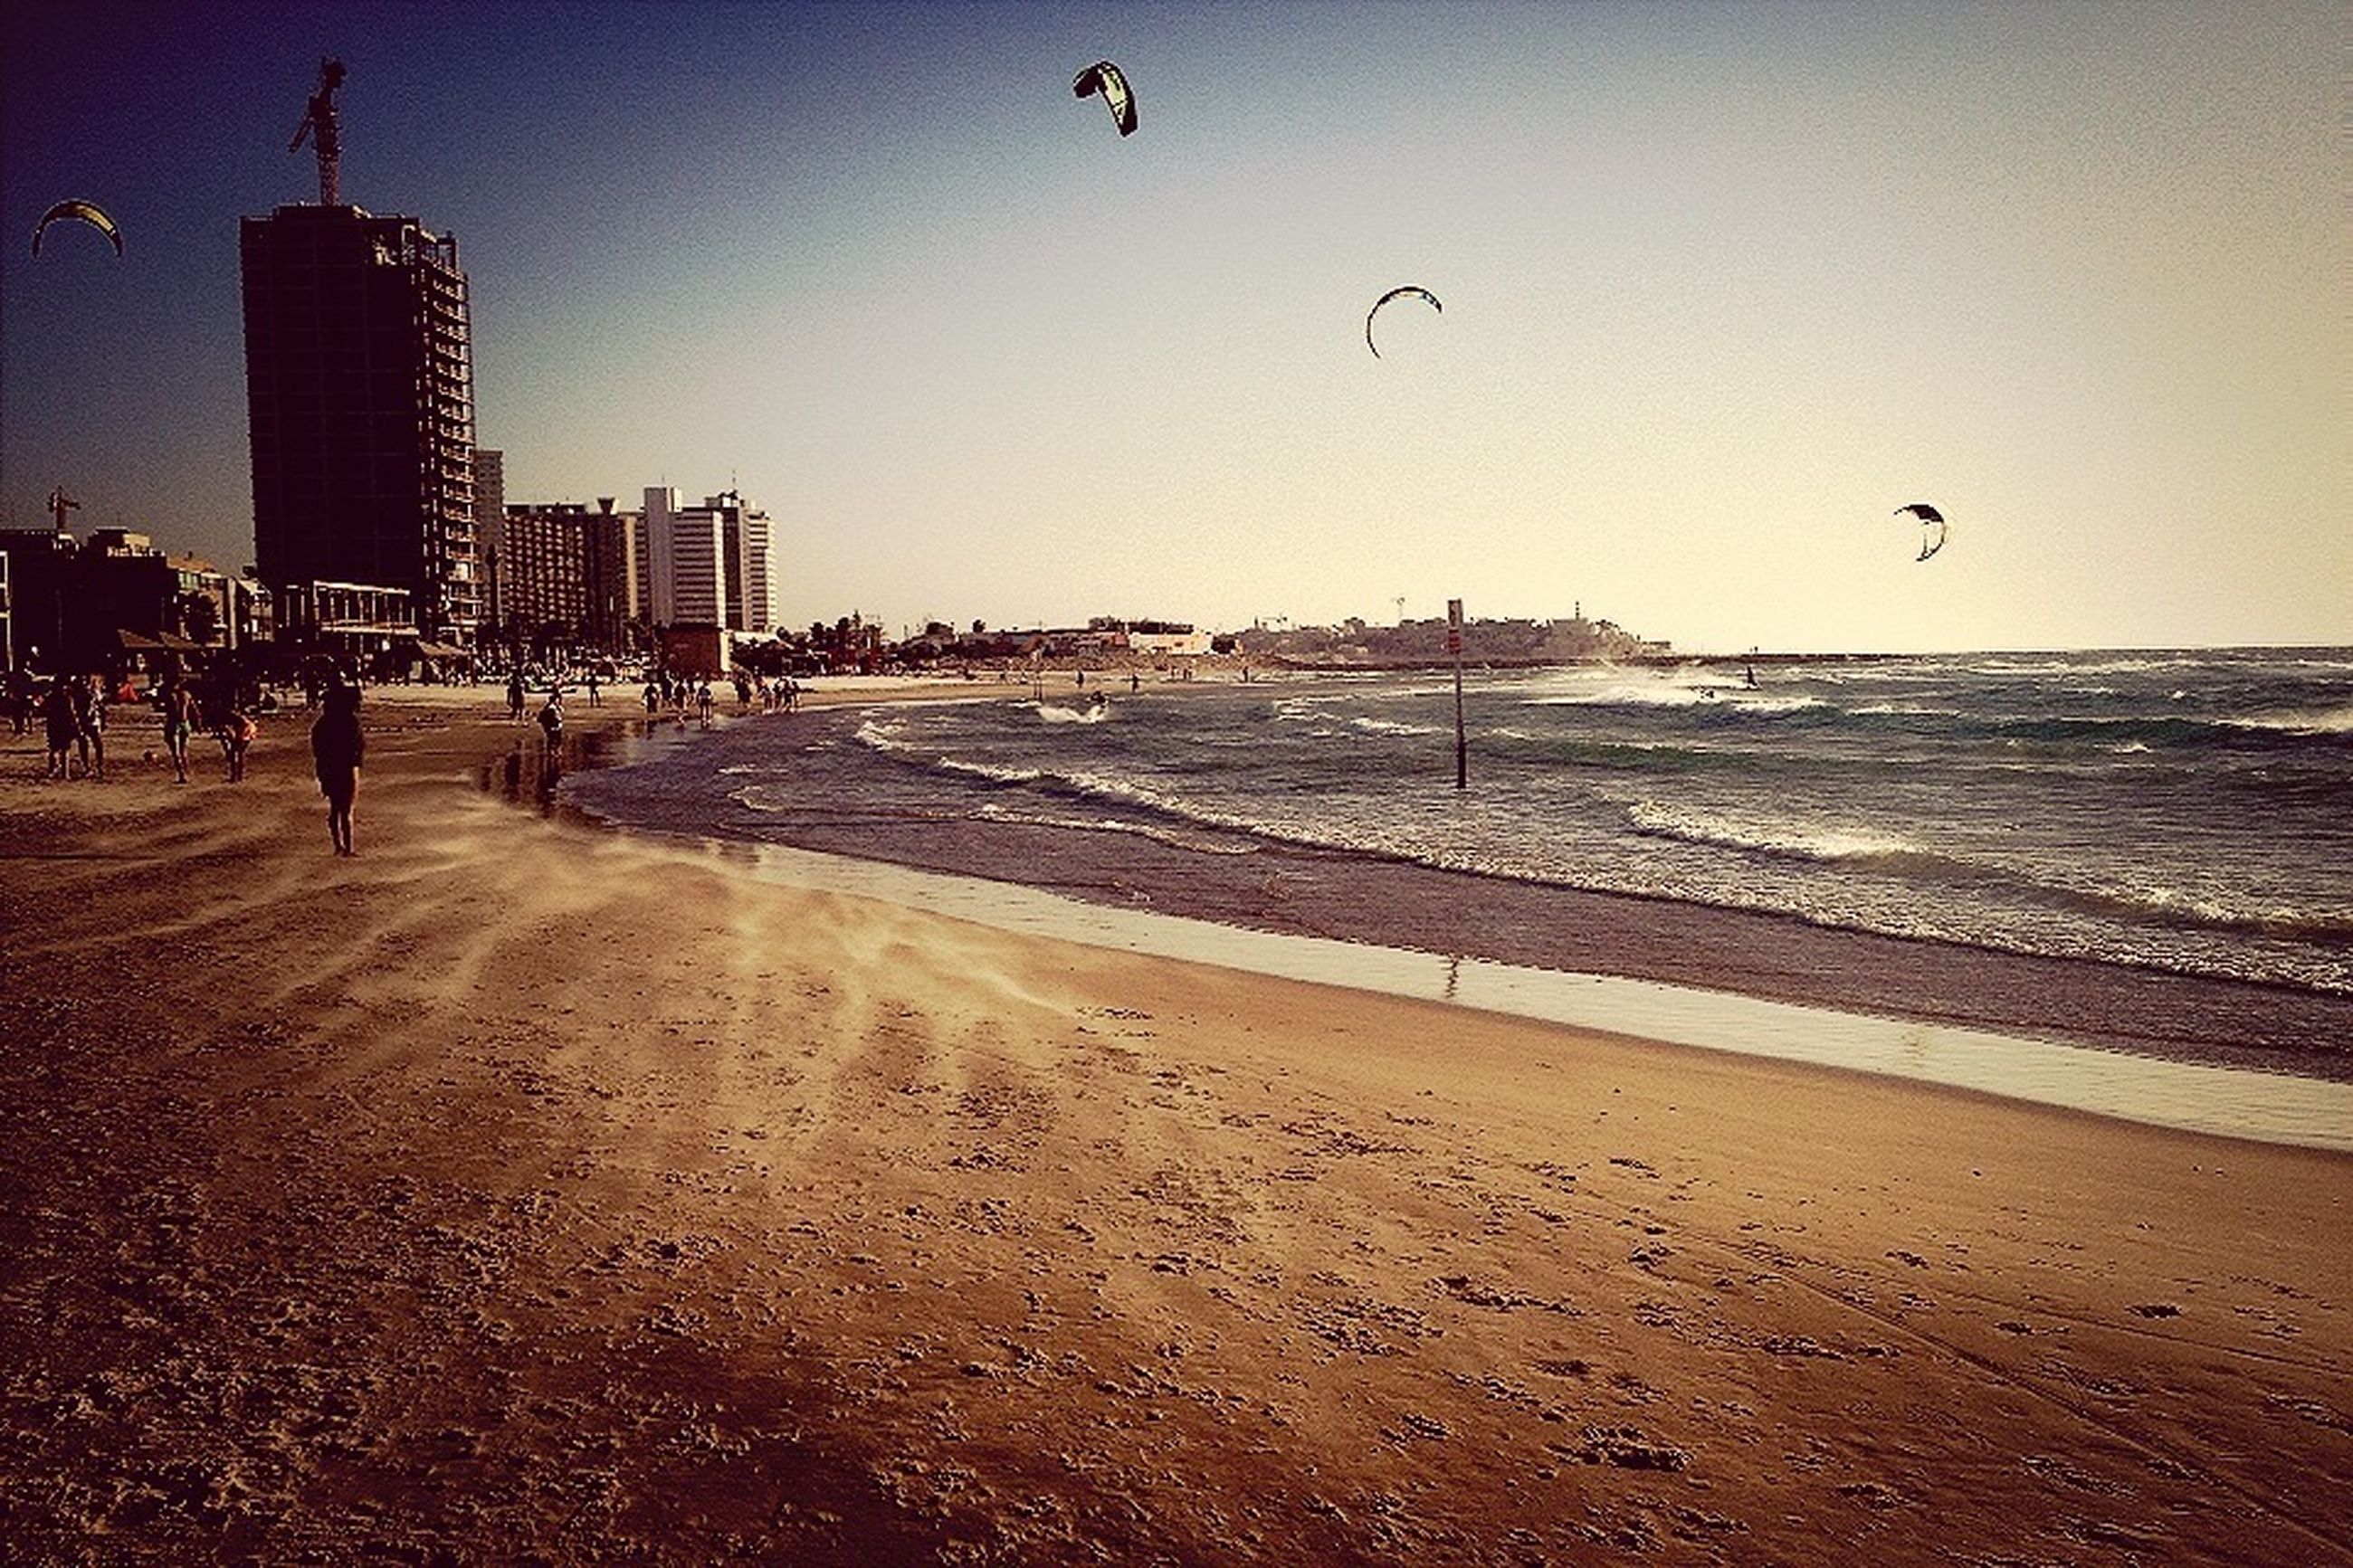 beach, sea, bird, flying, water, shore, sand, animal themes, animals in the wild, horizon over water, wildlife, clear sky, seagull, built structure, wave, building exterior, architecture, incidental people, sky